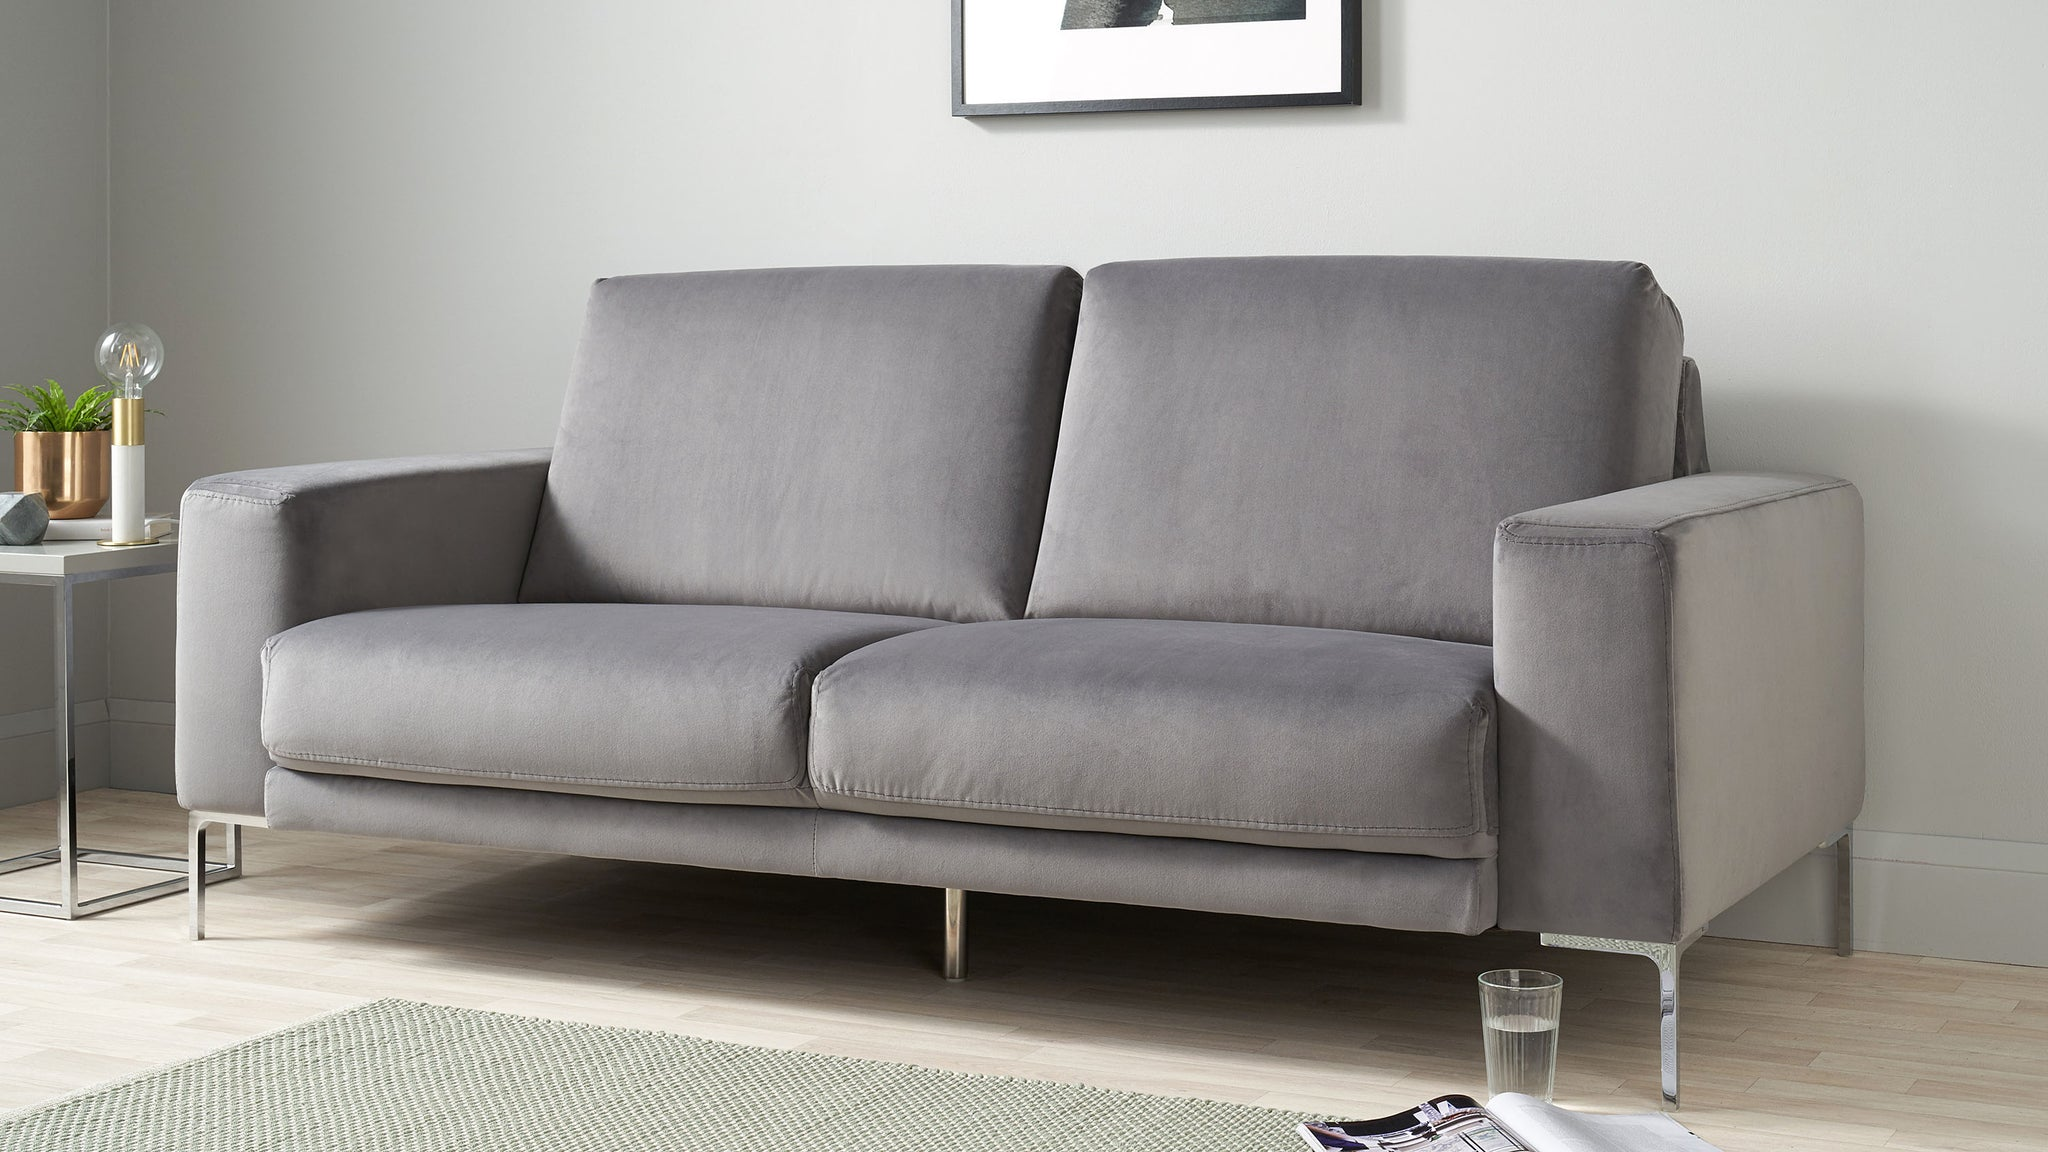 Studio Dark Grey Velvet With Chrome Leg 3 Seater Sofa